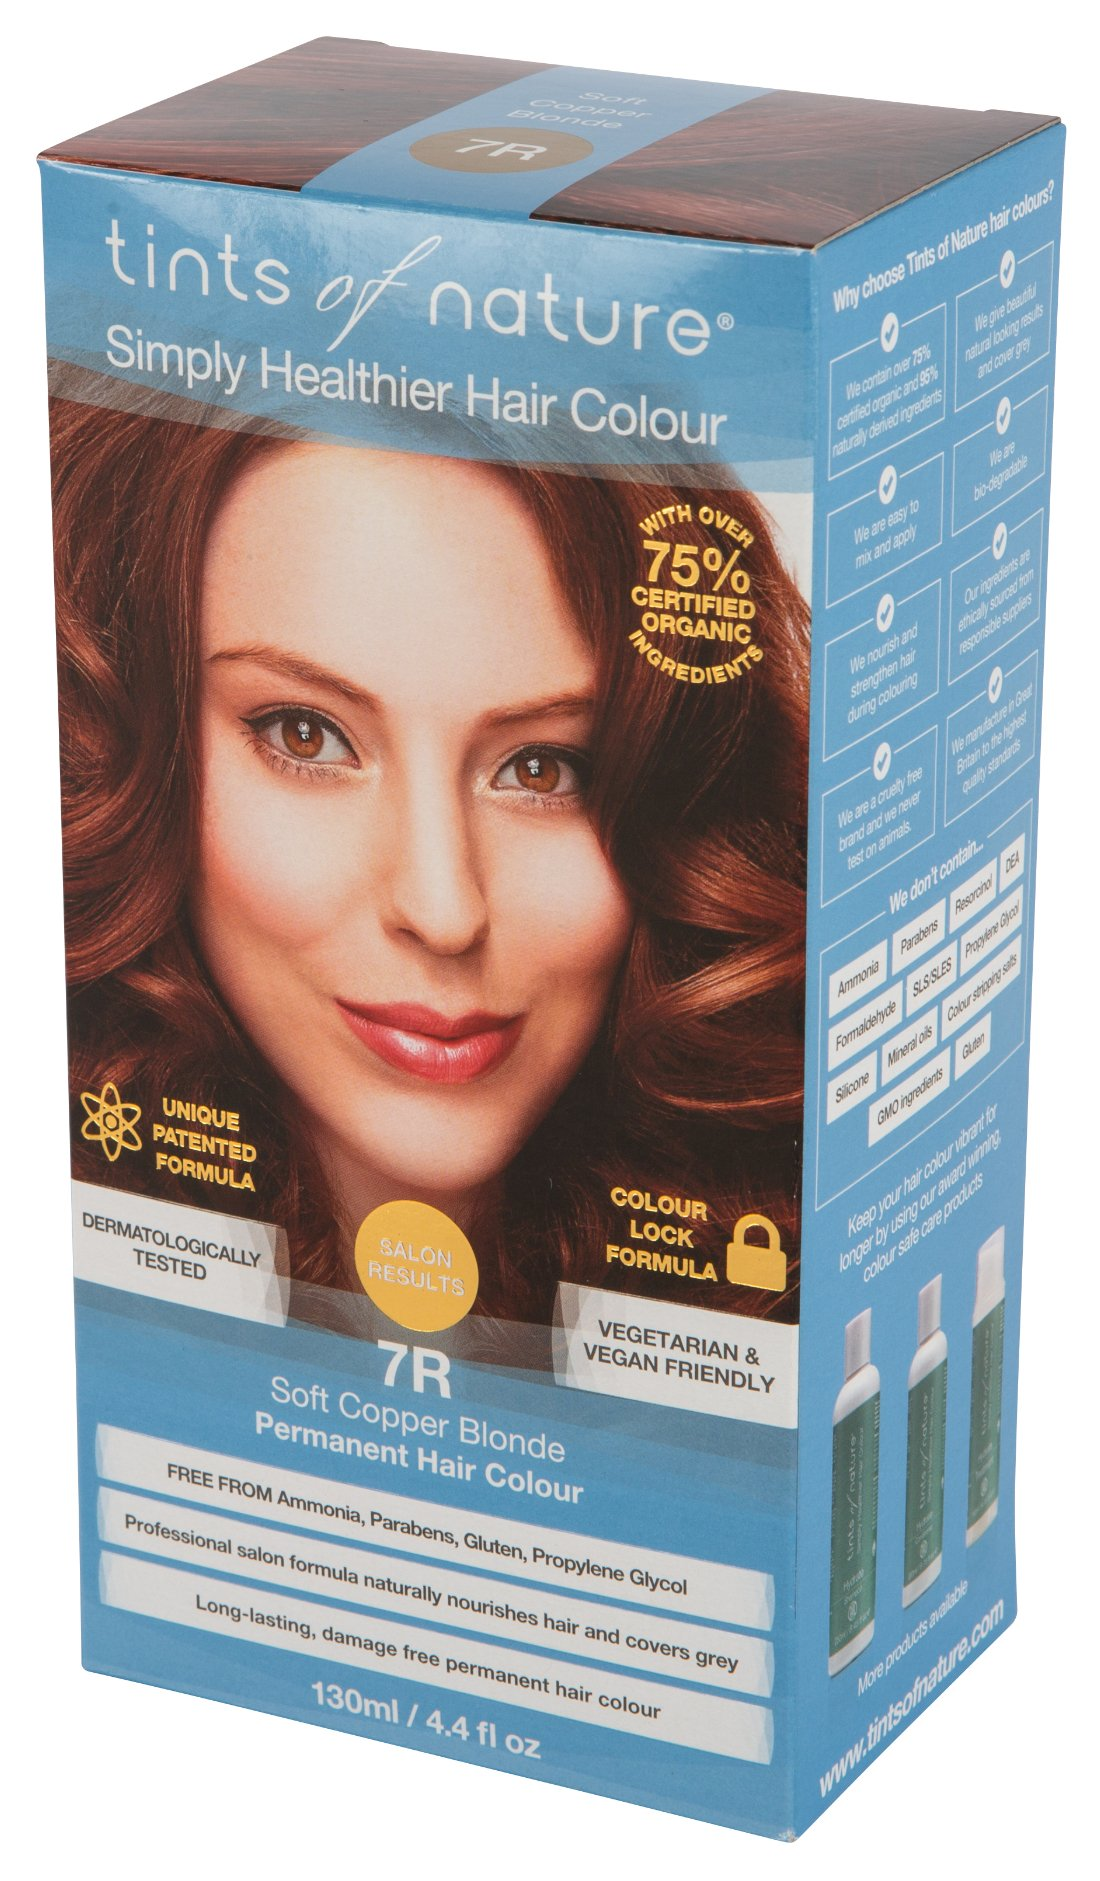 Tints of Nature Permanenent Colour - 4.4 fl oz - 12 Pack (7R Soft Copper Blonde) by Tints of Nature (Image #1)